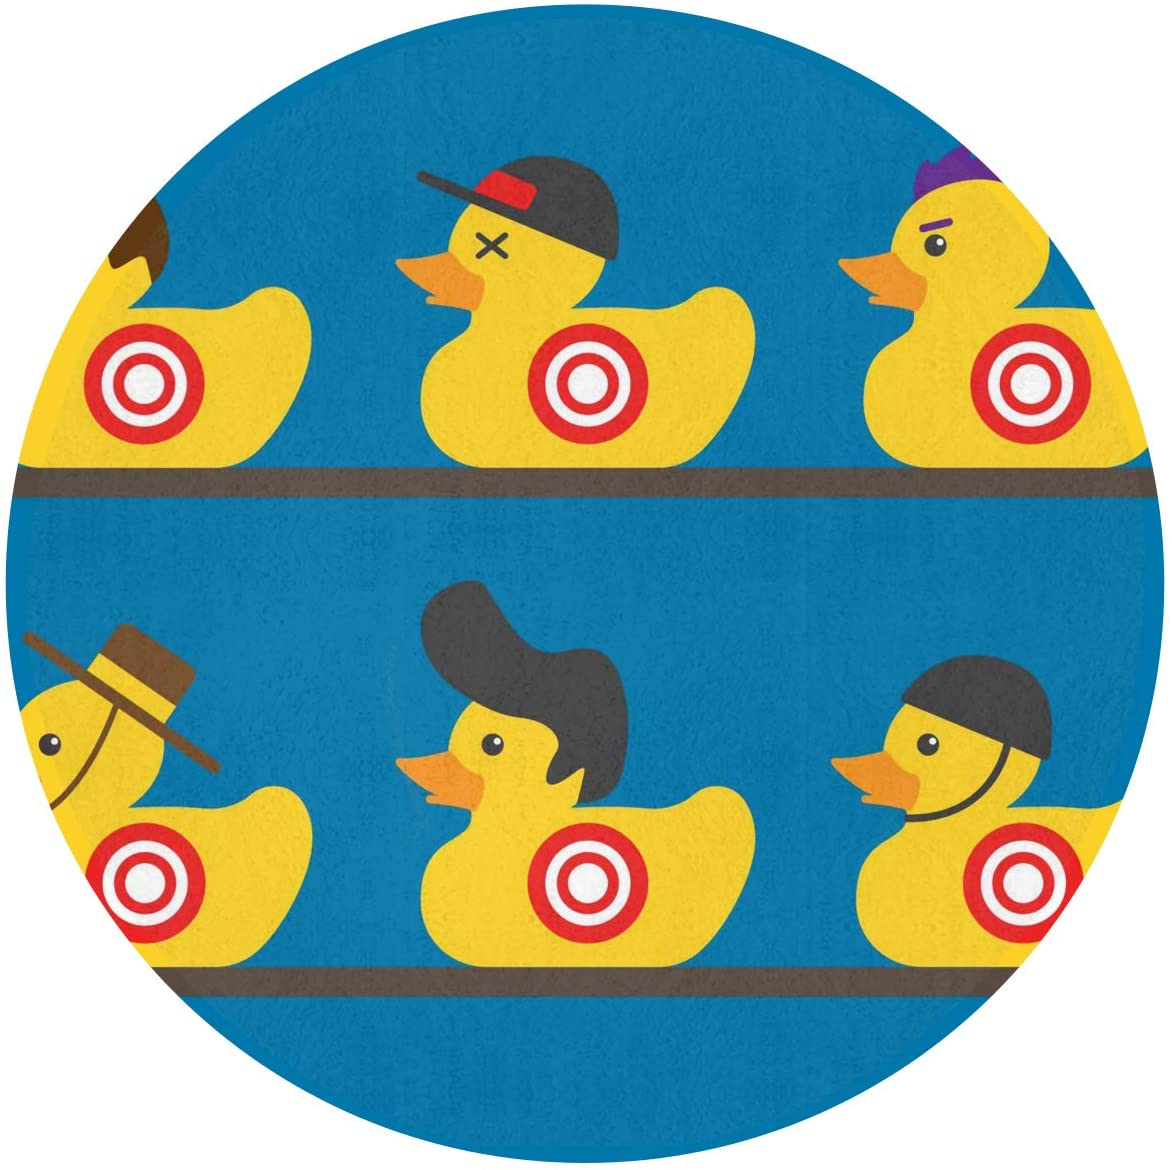 SuperJK Fashion Rubber Yellow Duck Art Area Blanket, Round/Circle Mat Rugs, Soft Flannel Polyester Carpet, Anti-Slip Playmat for Boys & Girls Kids Room/Bedroom Protection & Decor